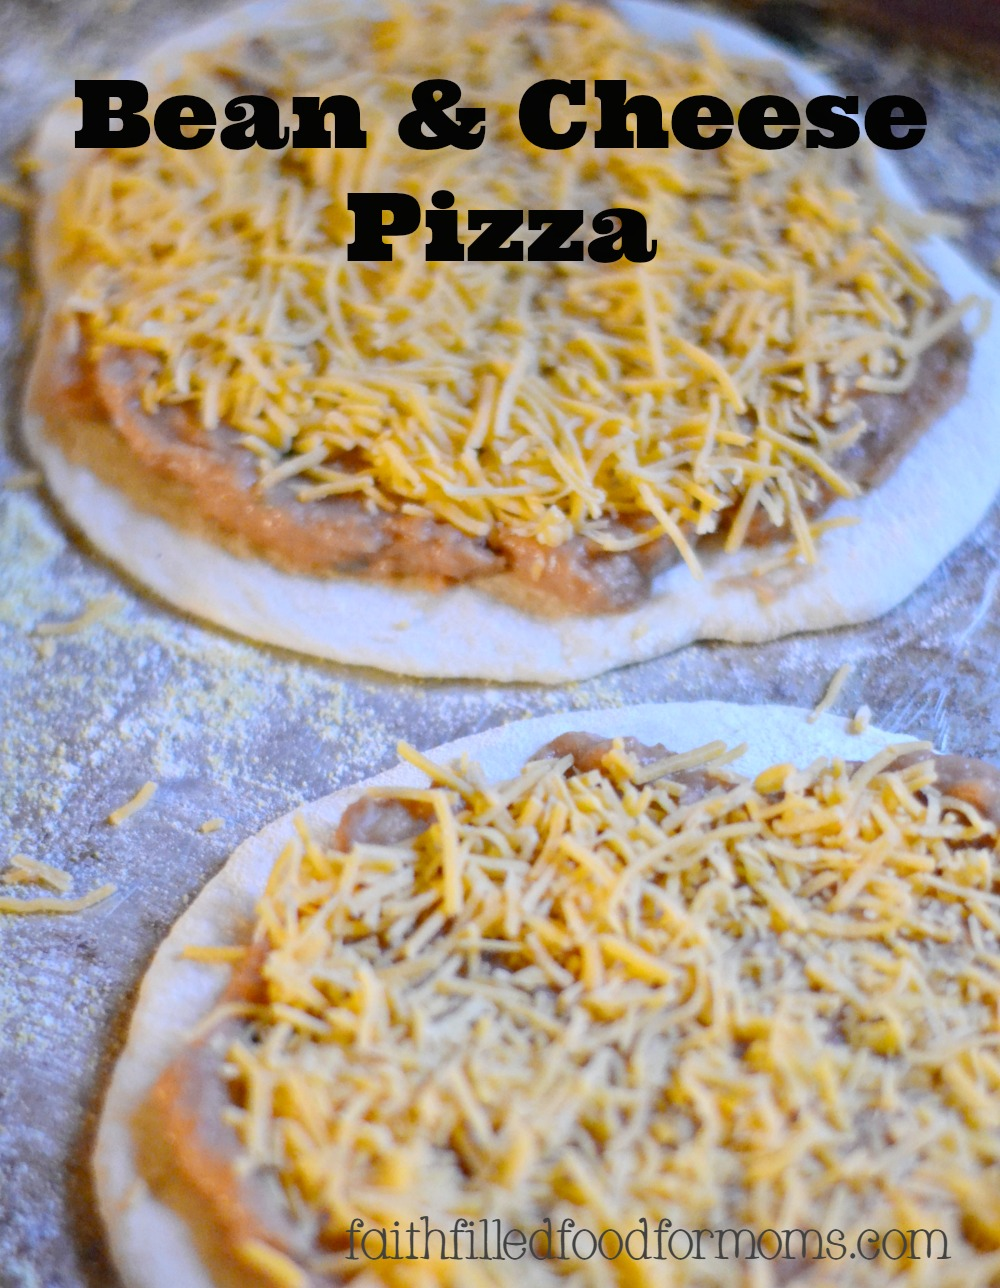 Bean and Cheese Pizza